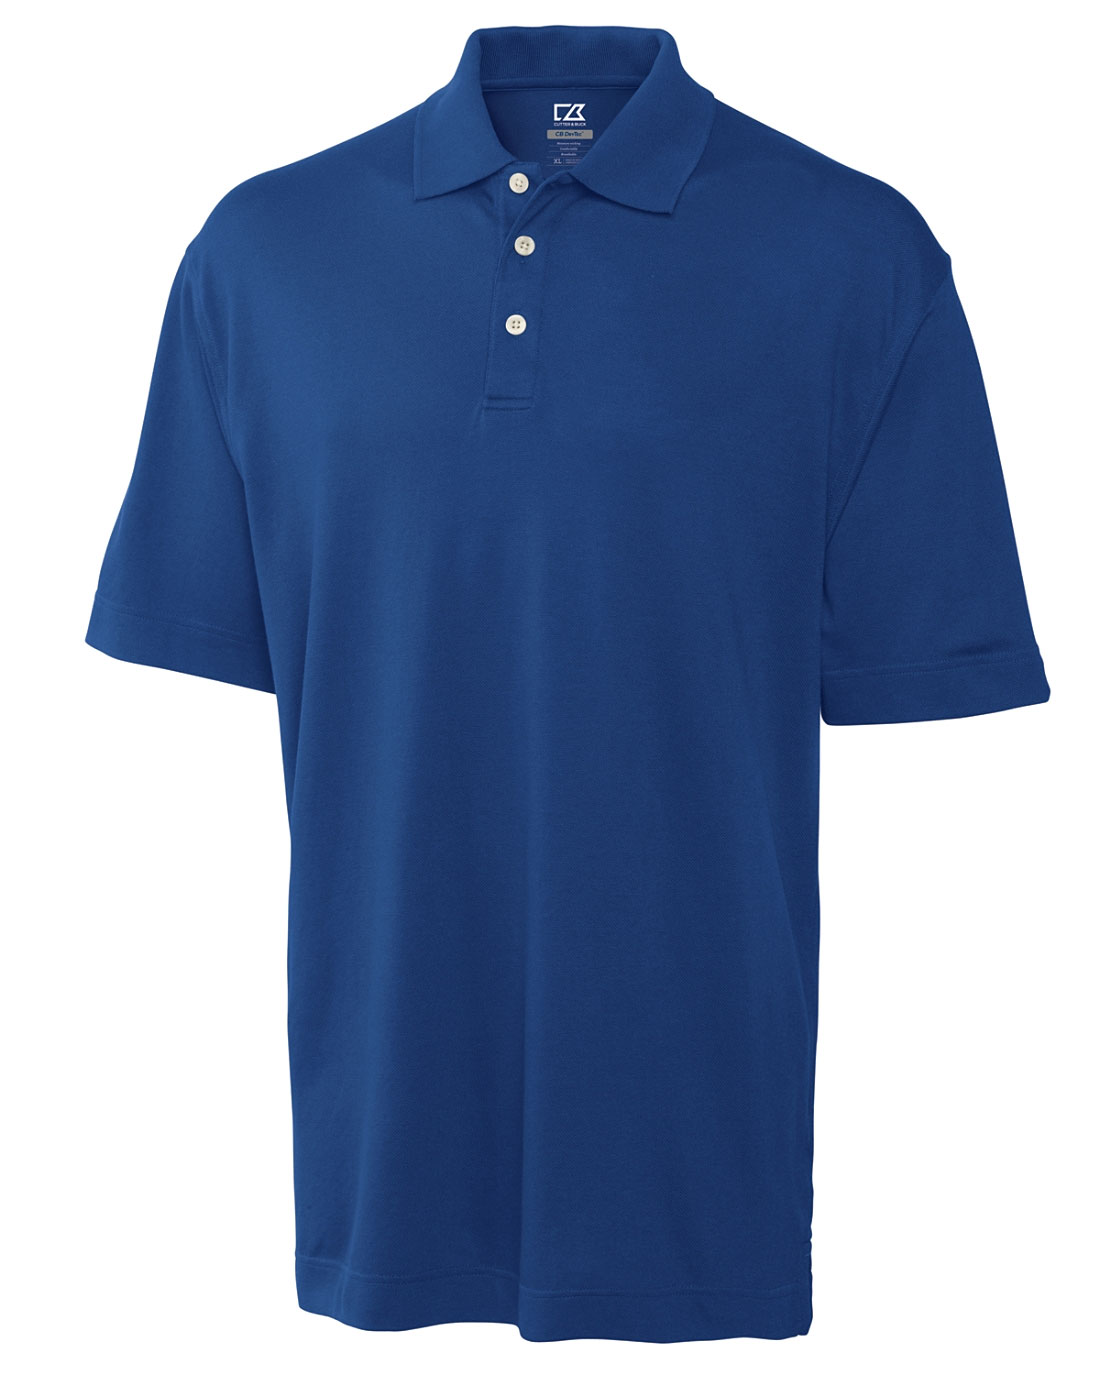 Mens Big and Tall CB Drytec� Elliott Bay Polo